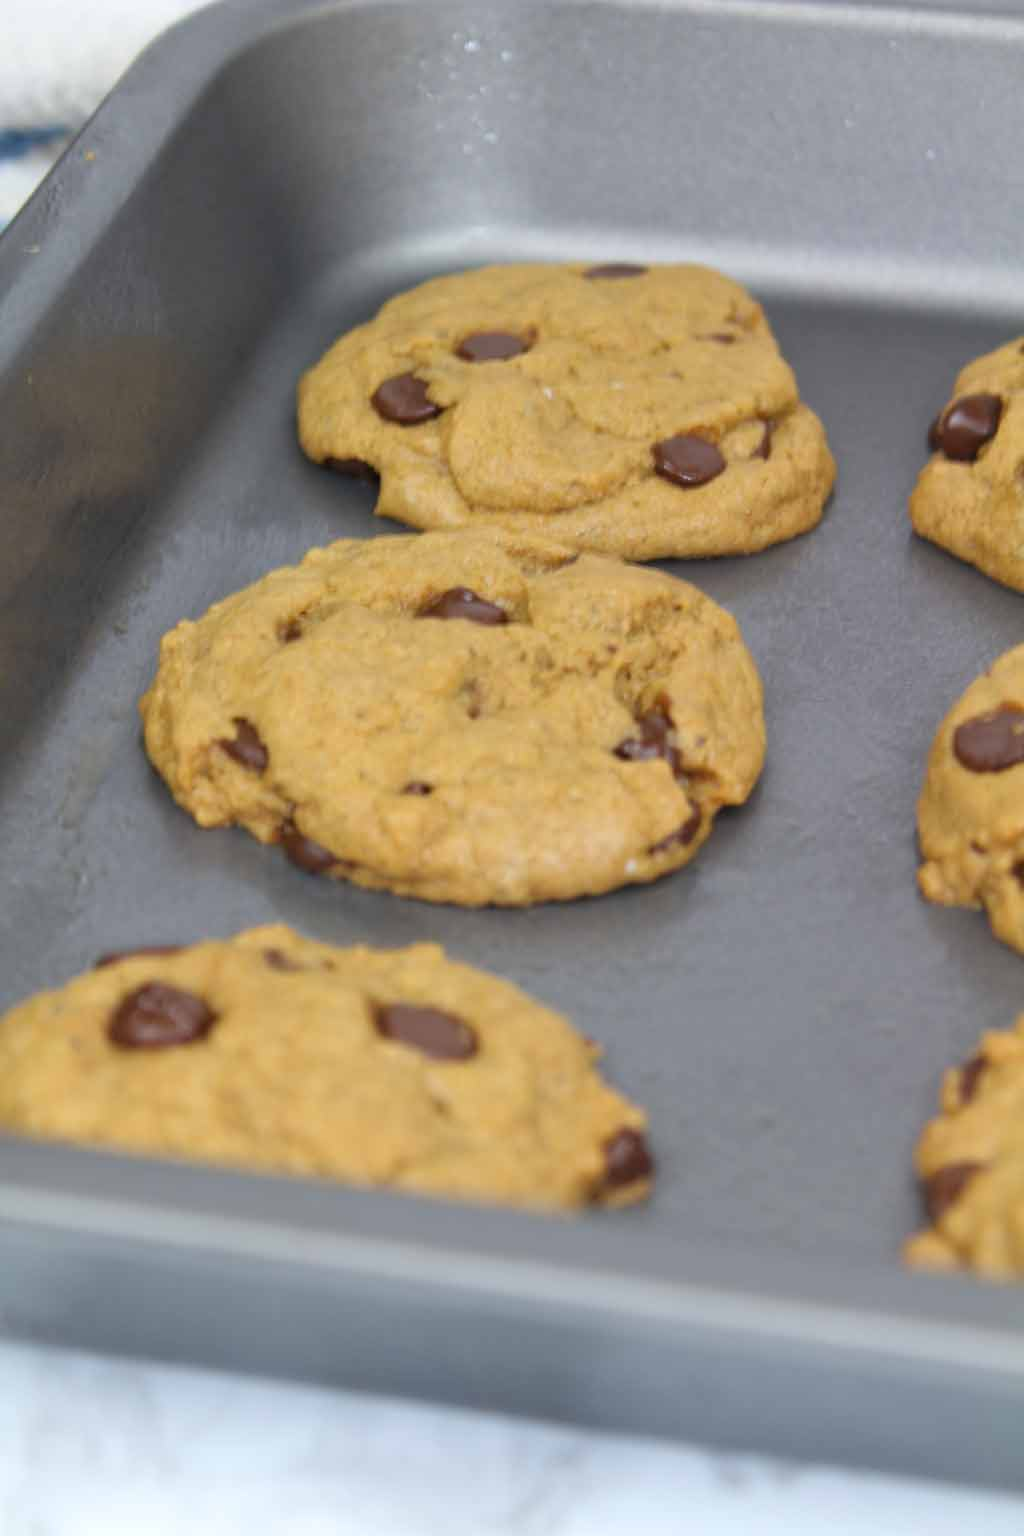 cookies on tray after baking